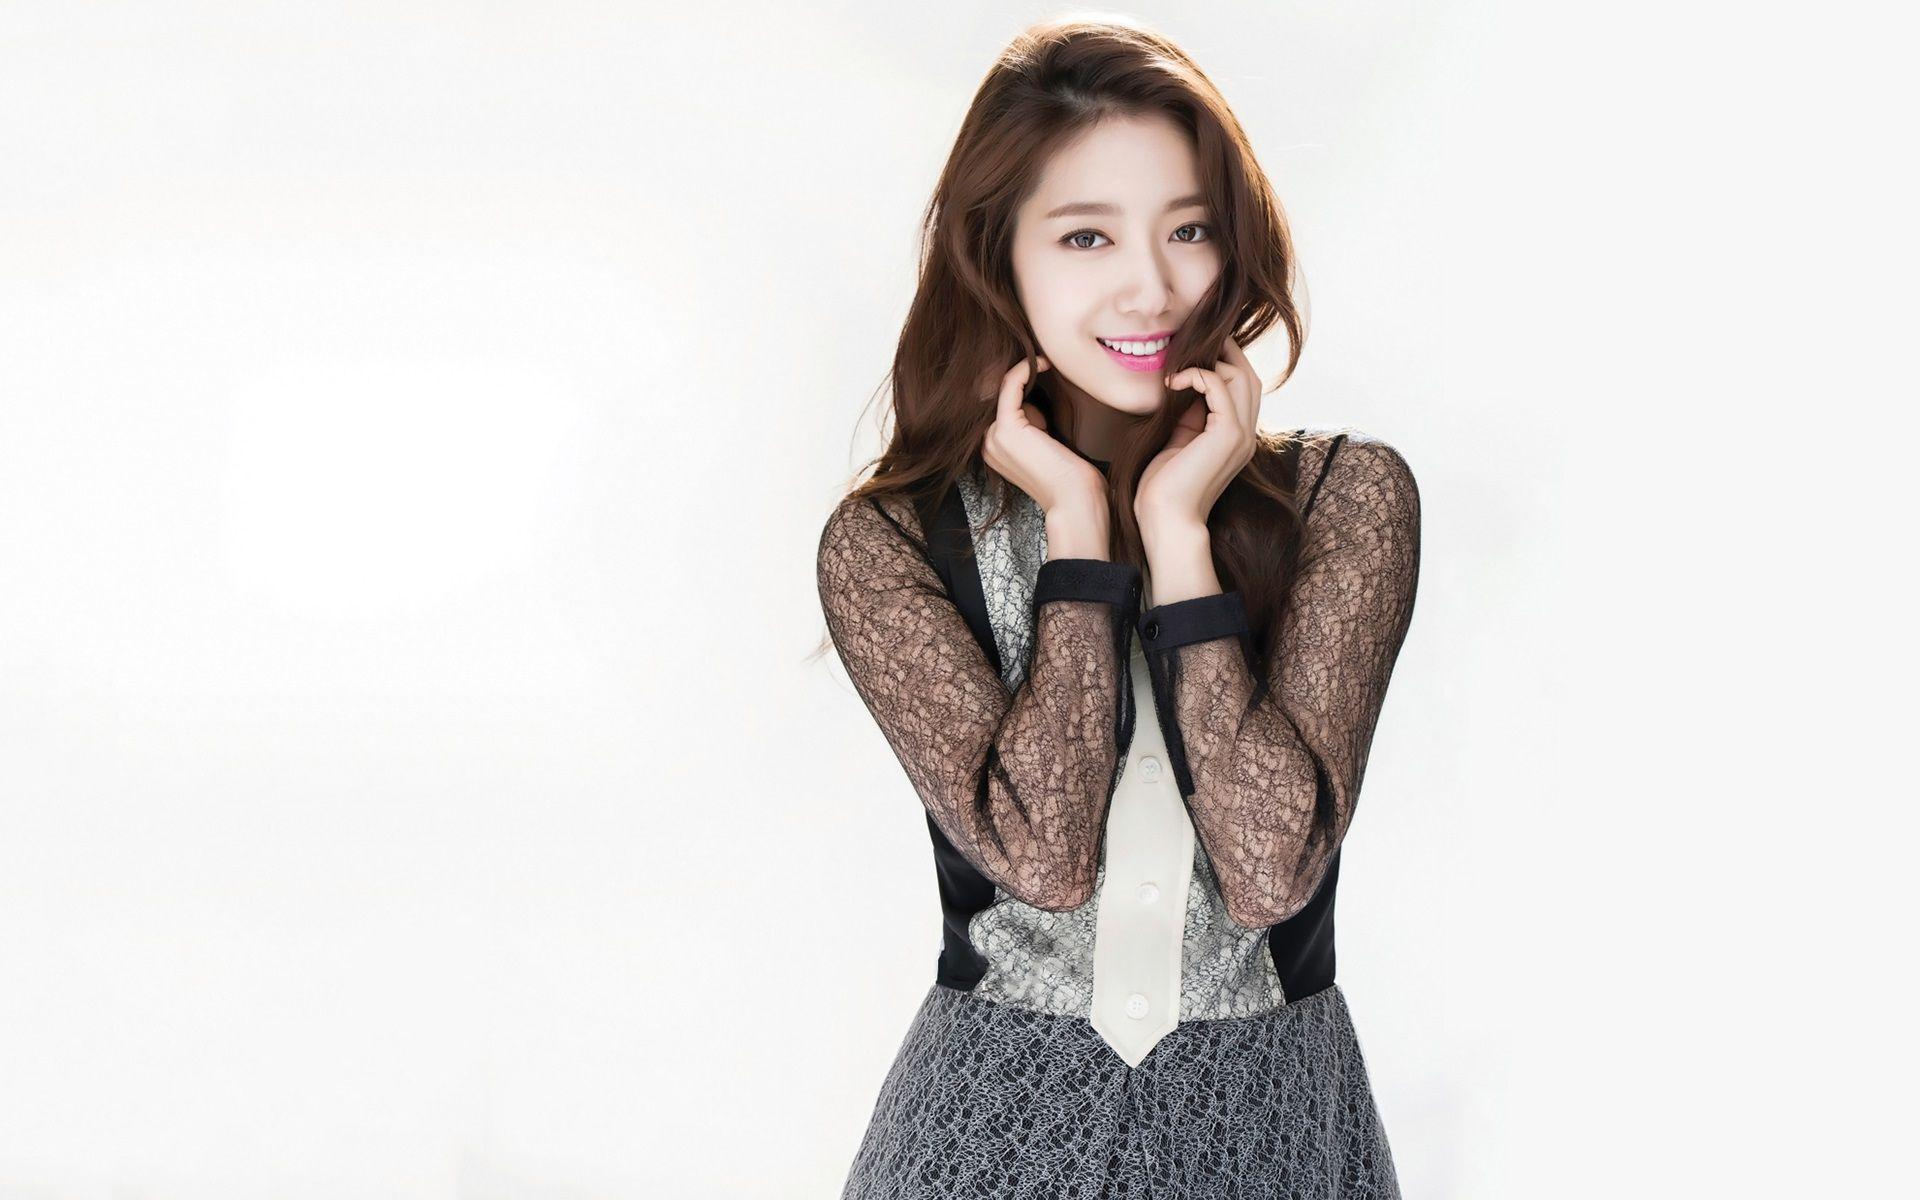 Park Shin Hye Wallpapers - Wallpaper Cave